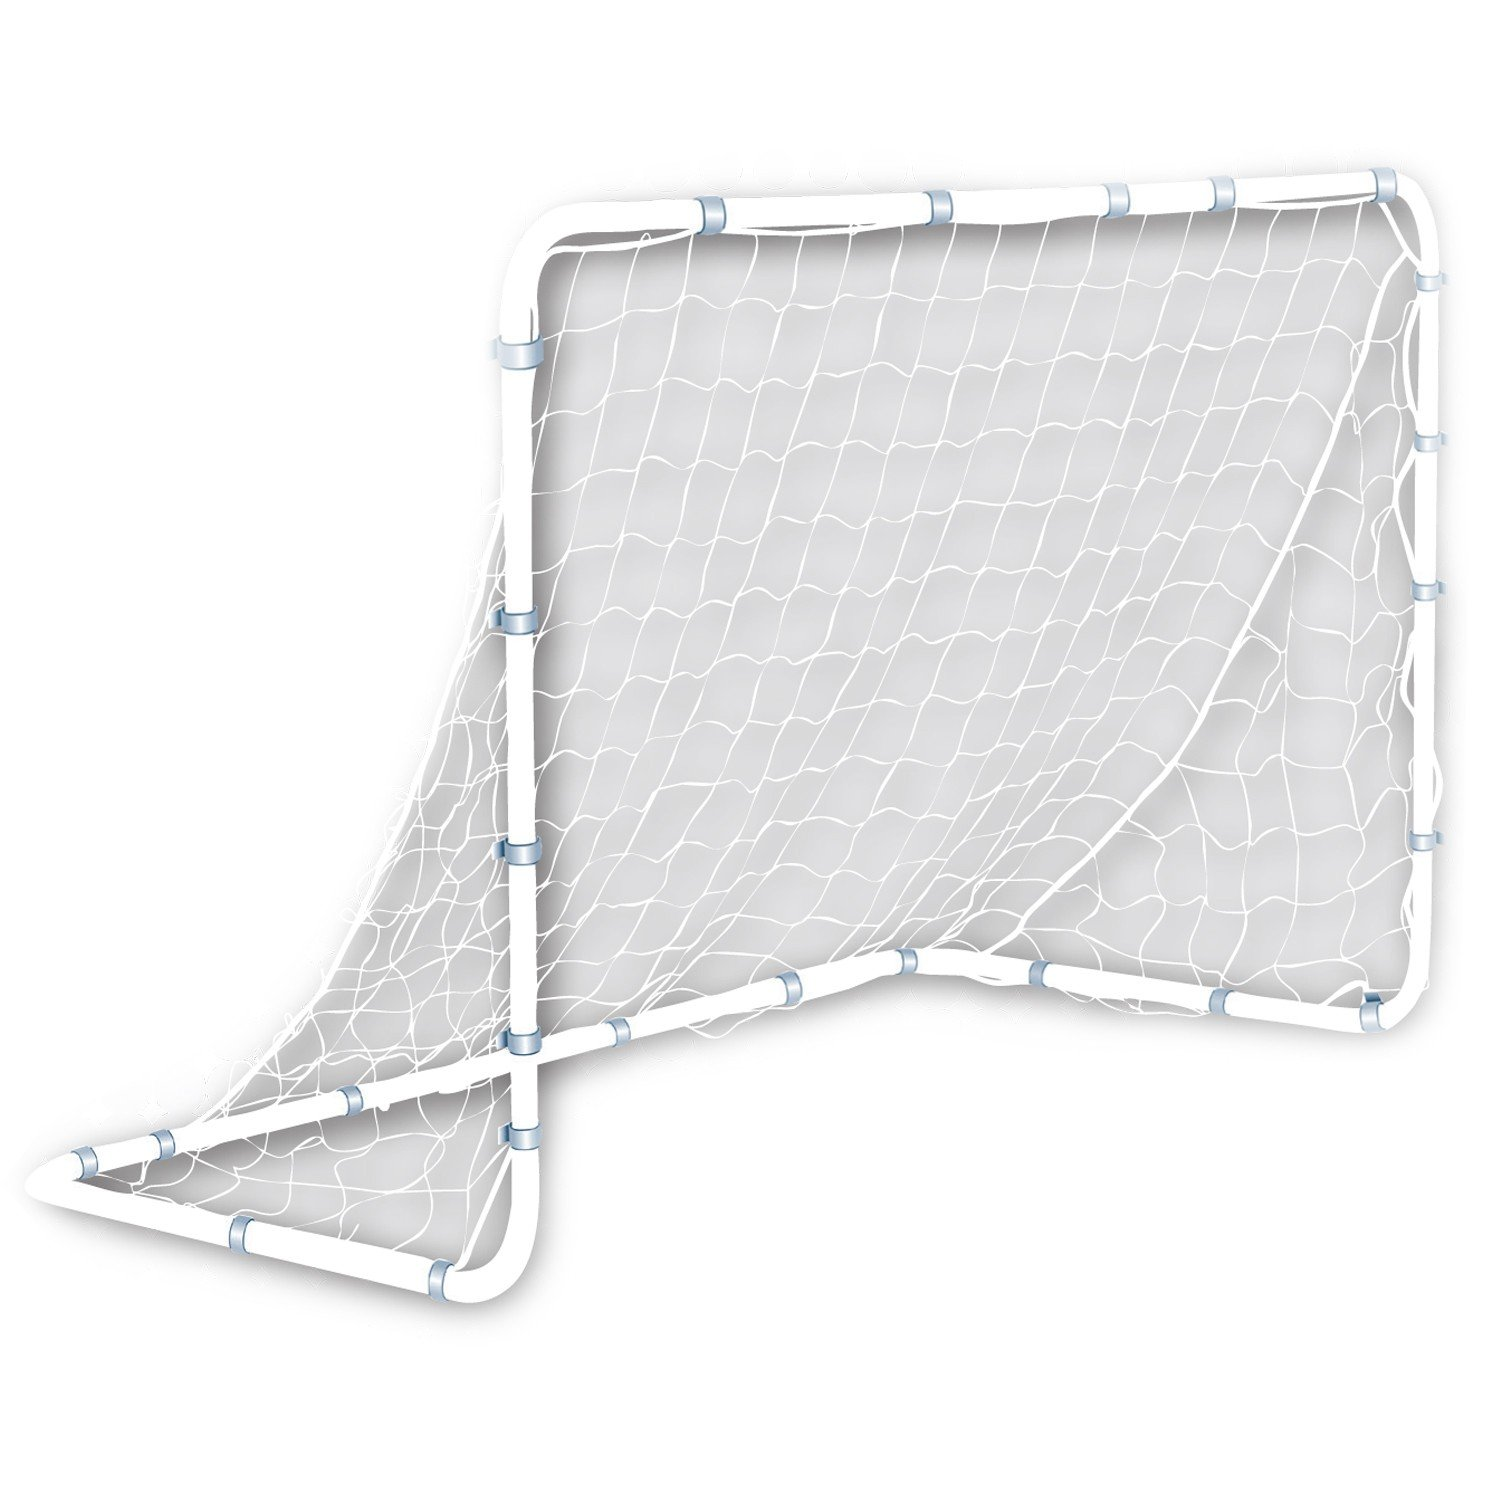 Franklin Sports Competition Soccer Goal – Soccer Net – Soccer Goal for Backyard – Steel Construction – 6 Ft by 4 Ft by Franklin Sports (Image #2)